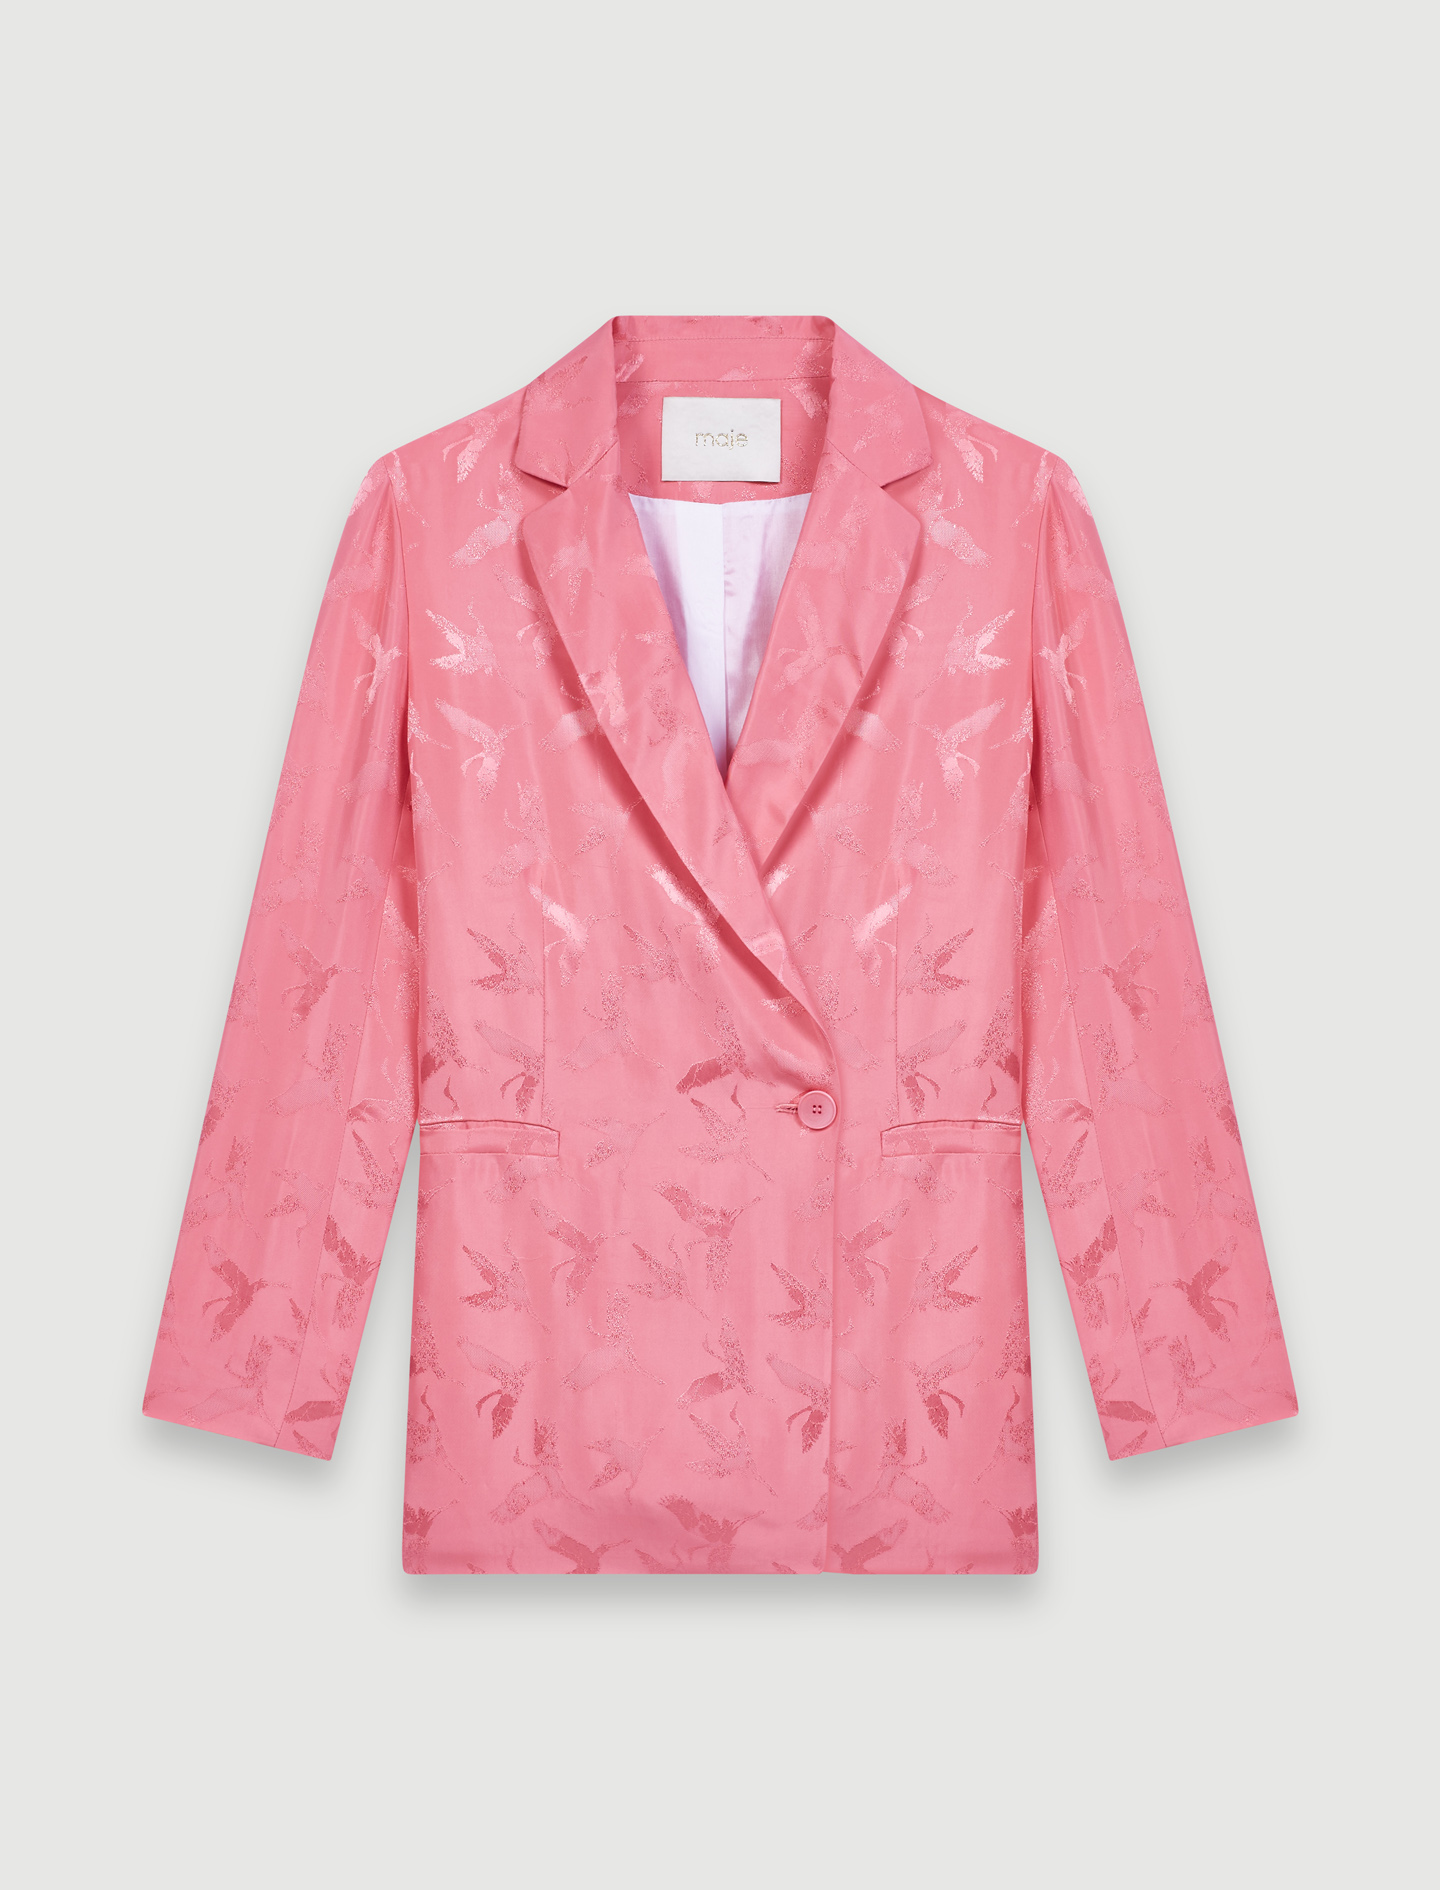 Satiny jacquard double-breasted jacket - Pink